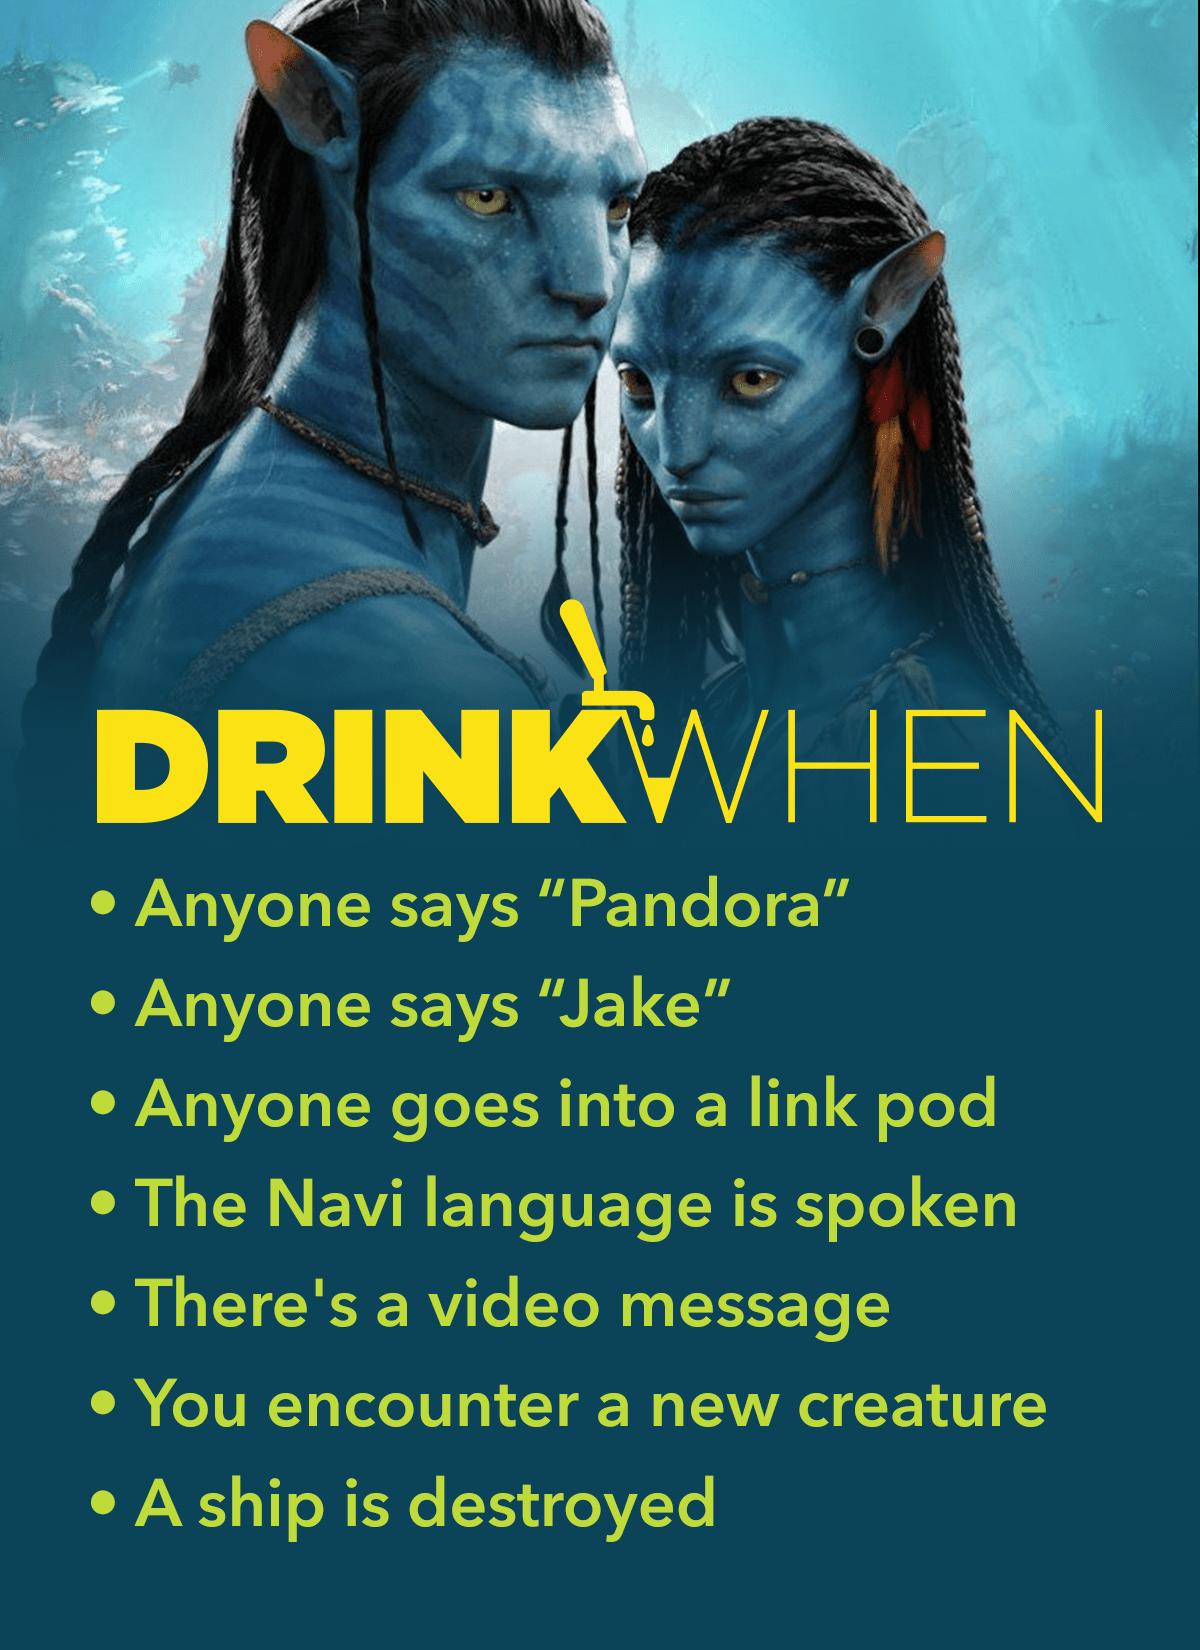 Avatar (2009) Drinking Game in 2020 Drinking games